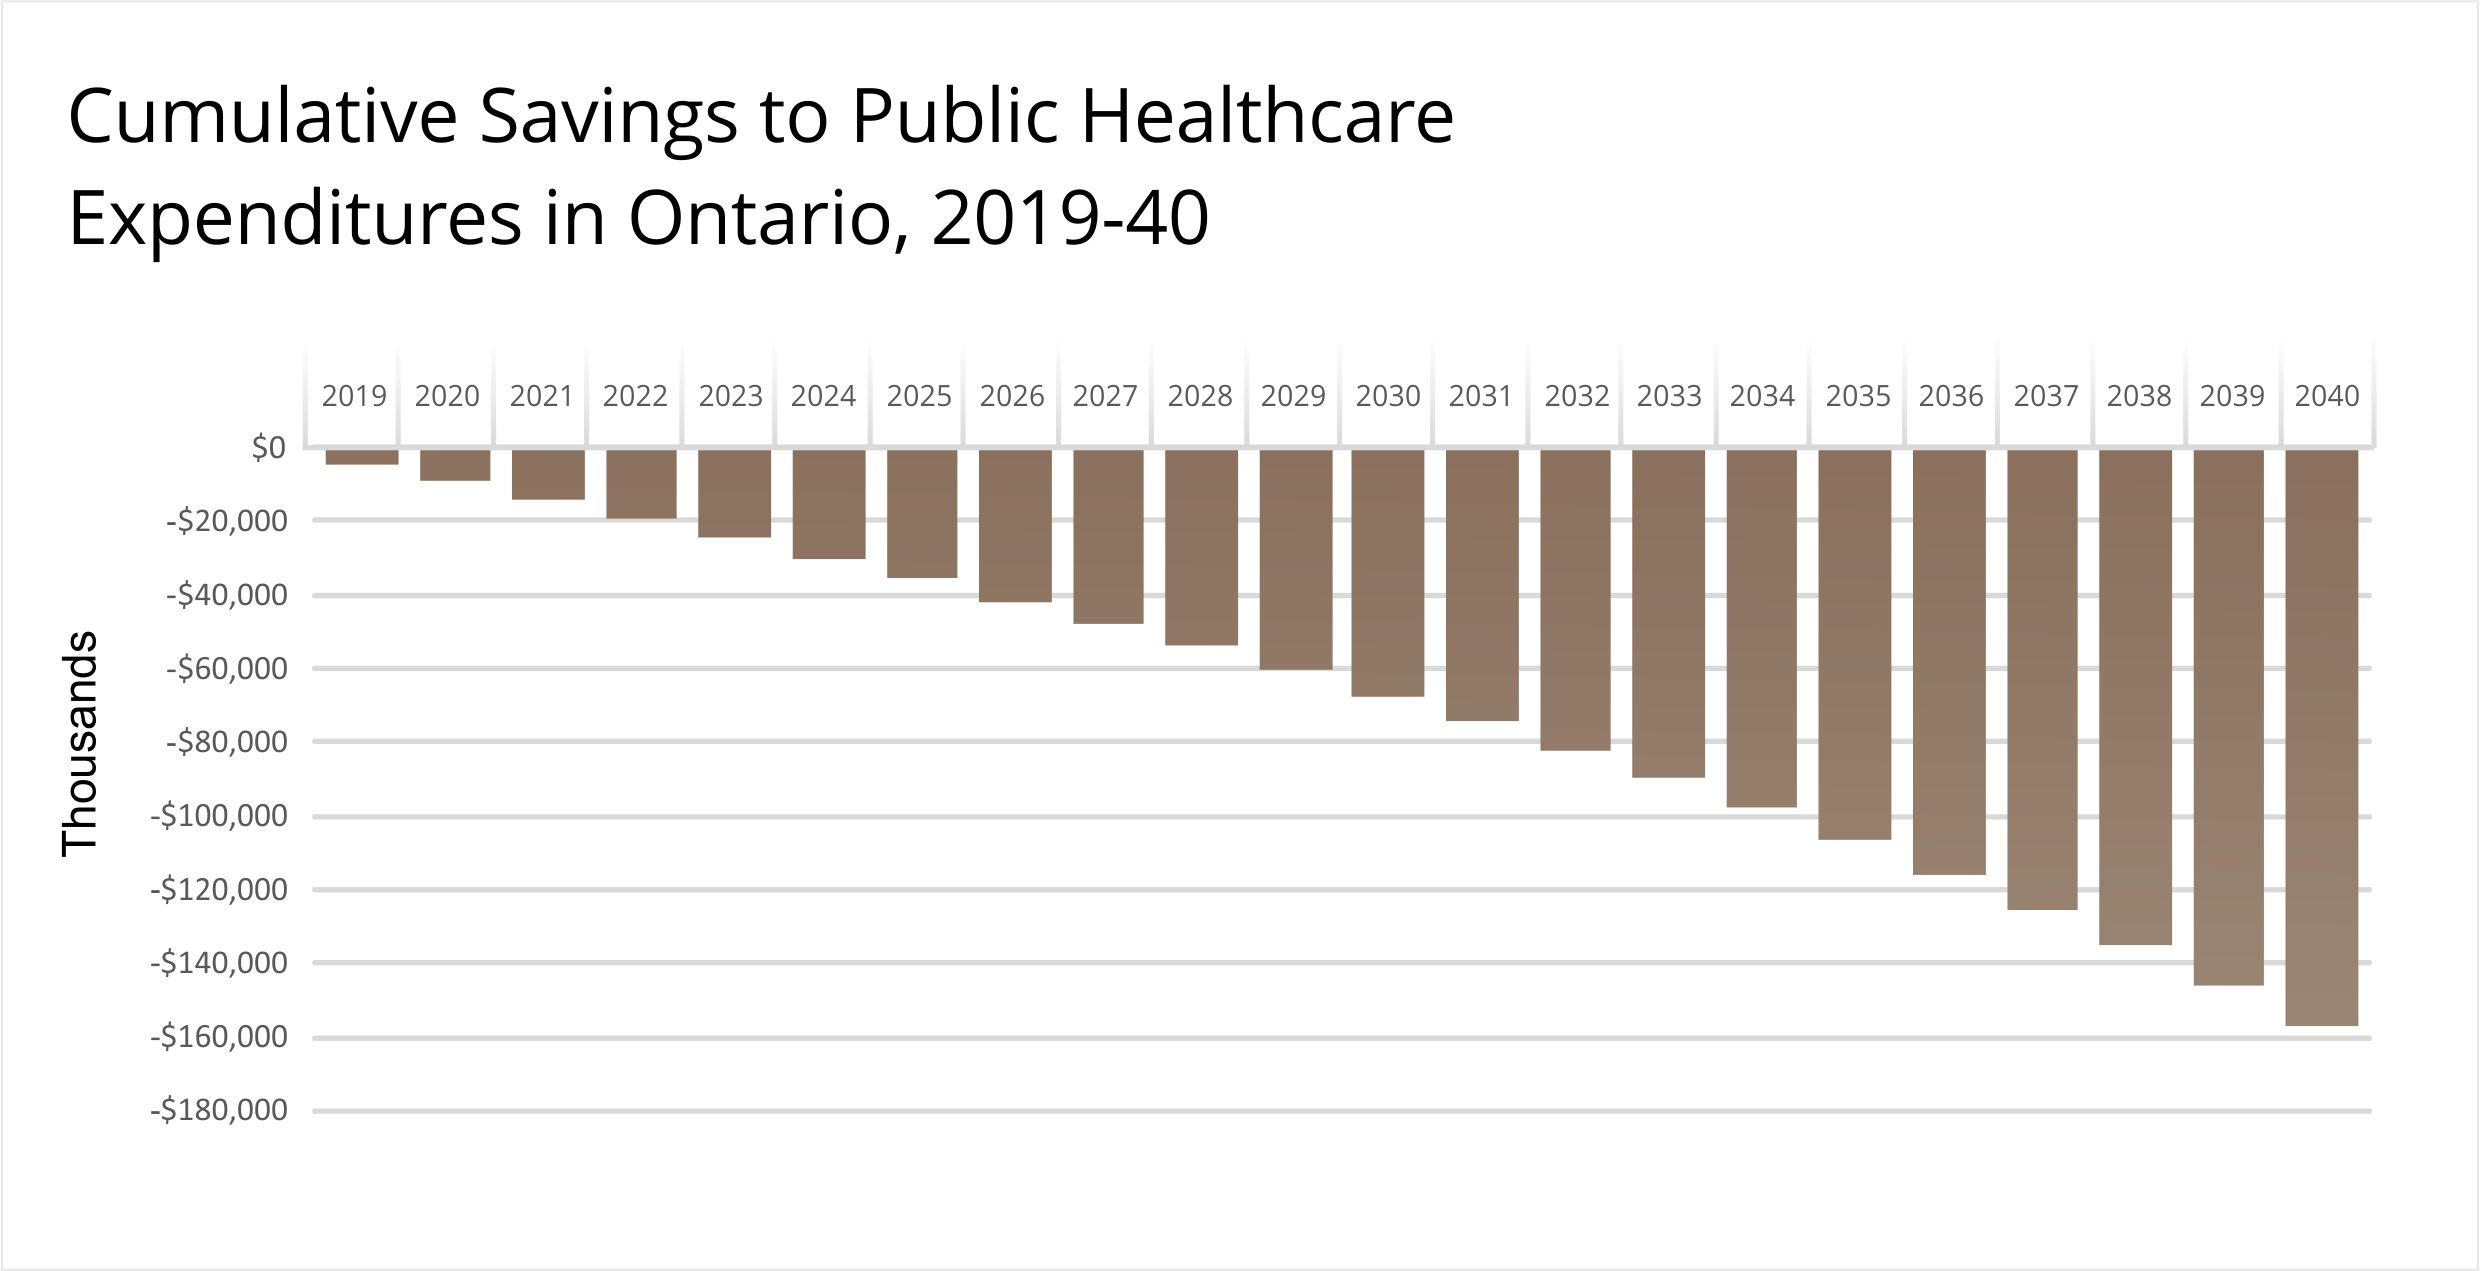 Cumulative Savings to Public Healthcare Expenditures in Ontario, 2019-40